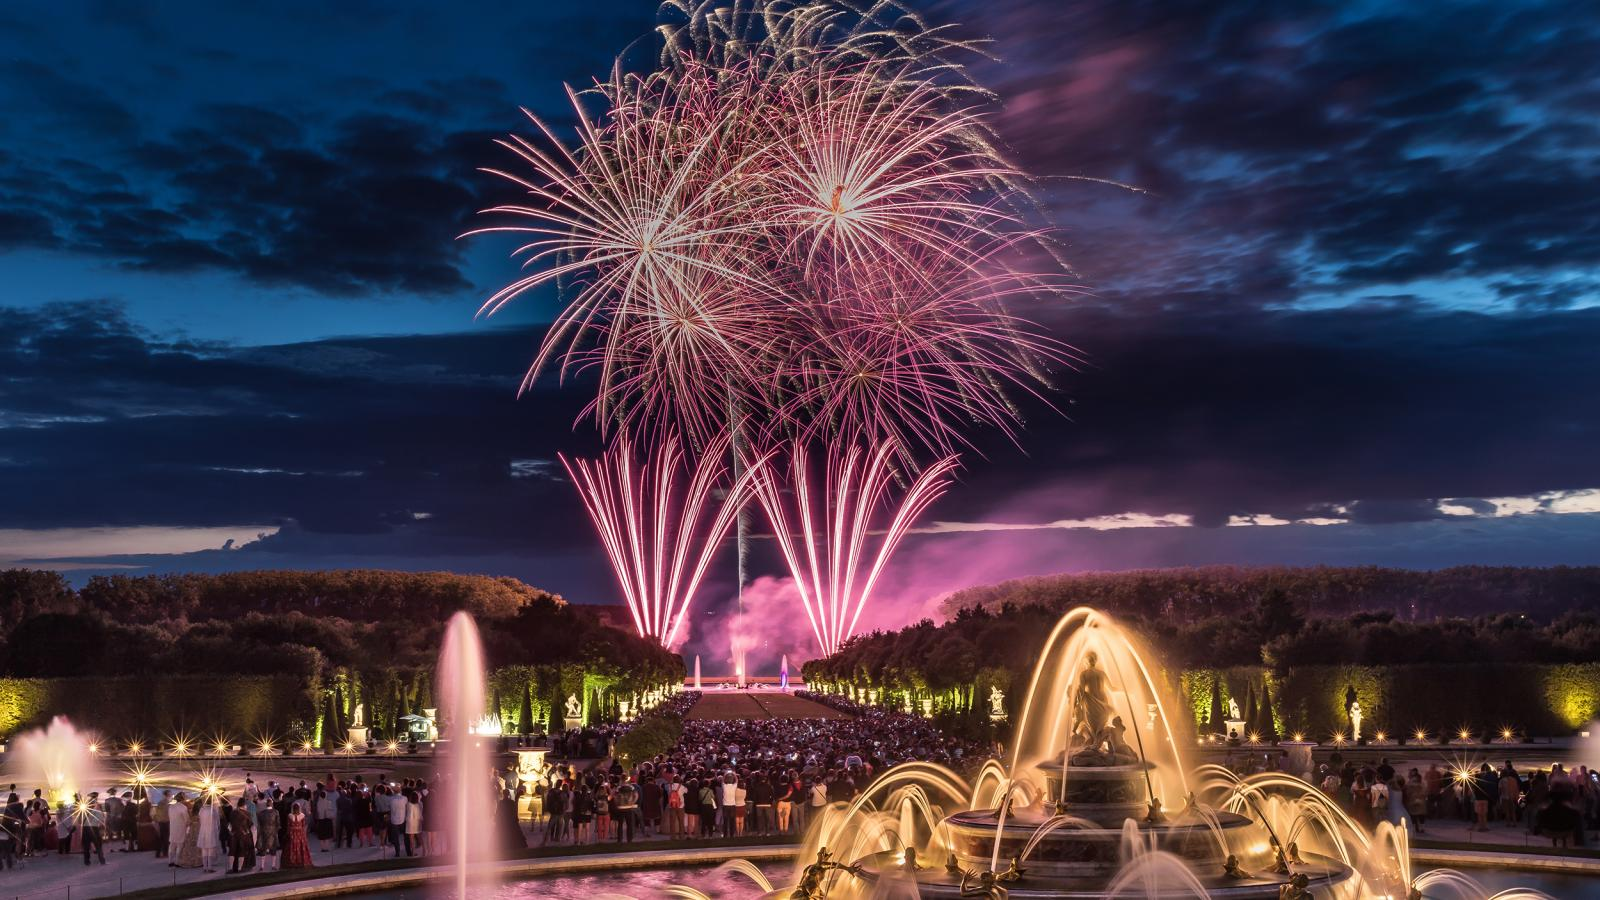 The Versailles magic of the Musical Fountains Shows